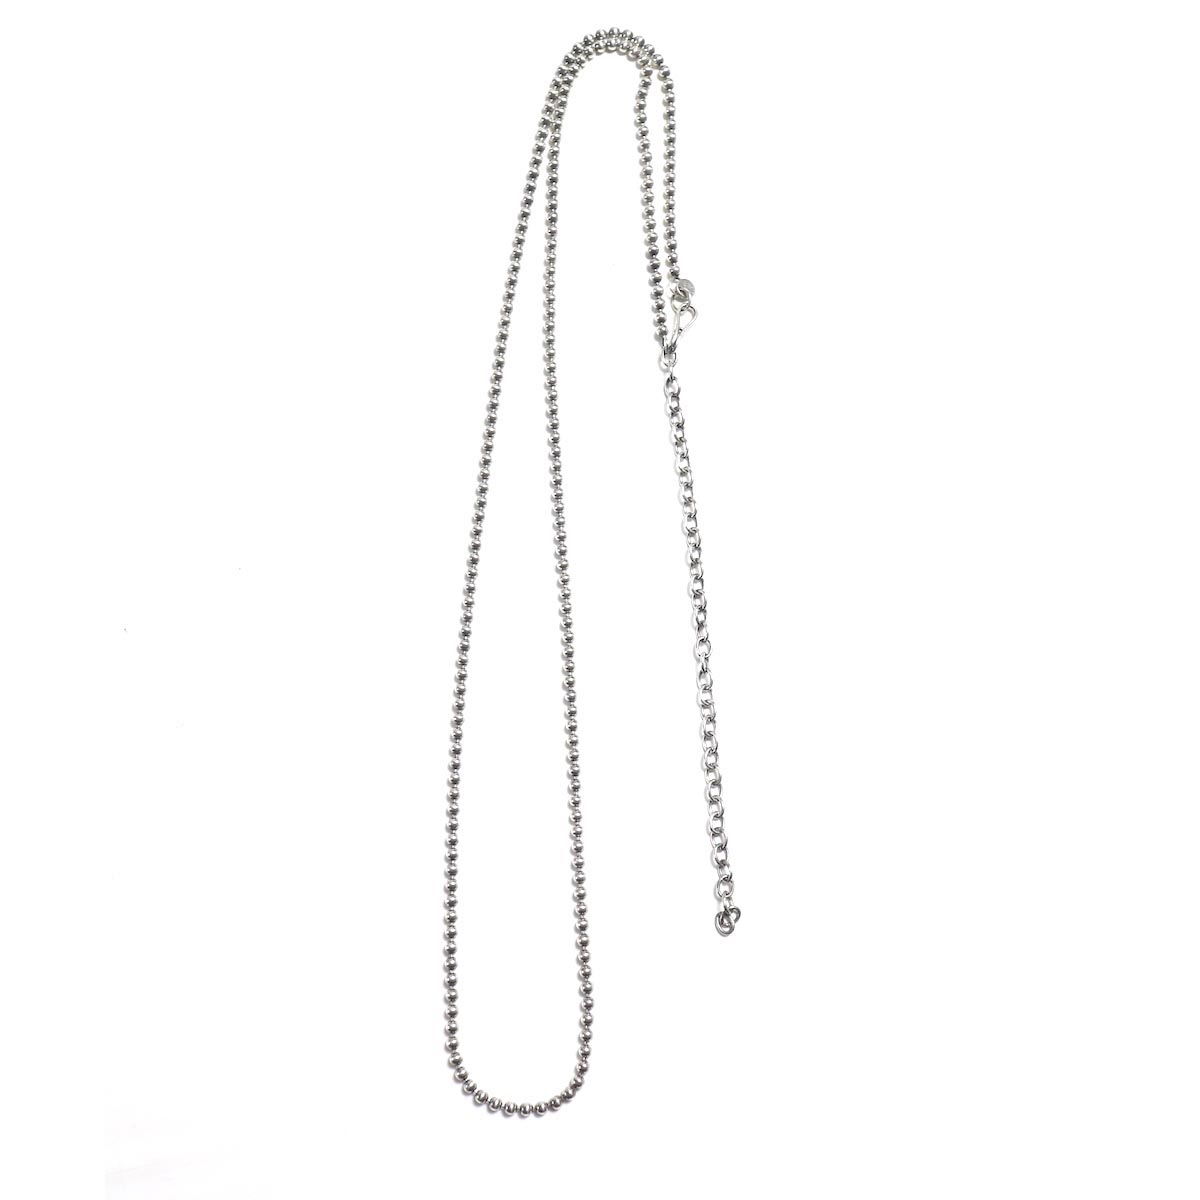 UNUSED / UH0473 Silver Ball Chain Necklace